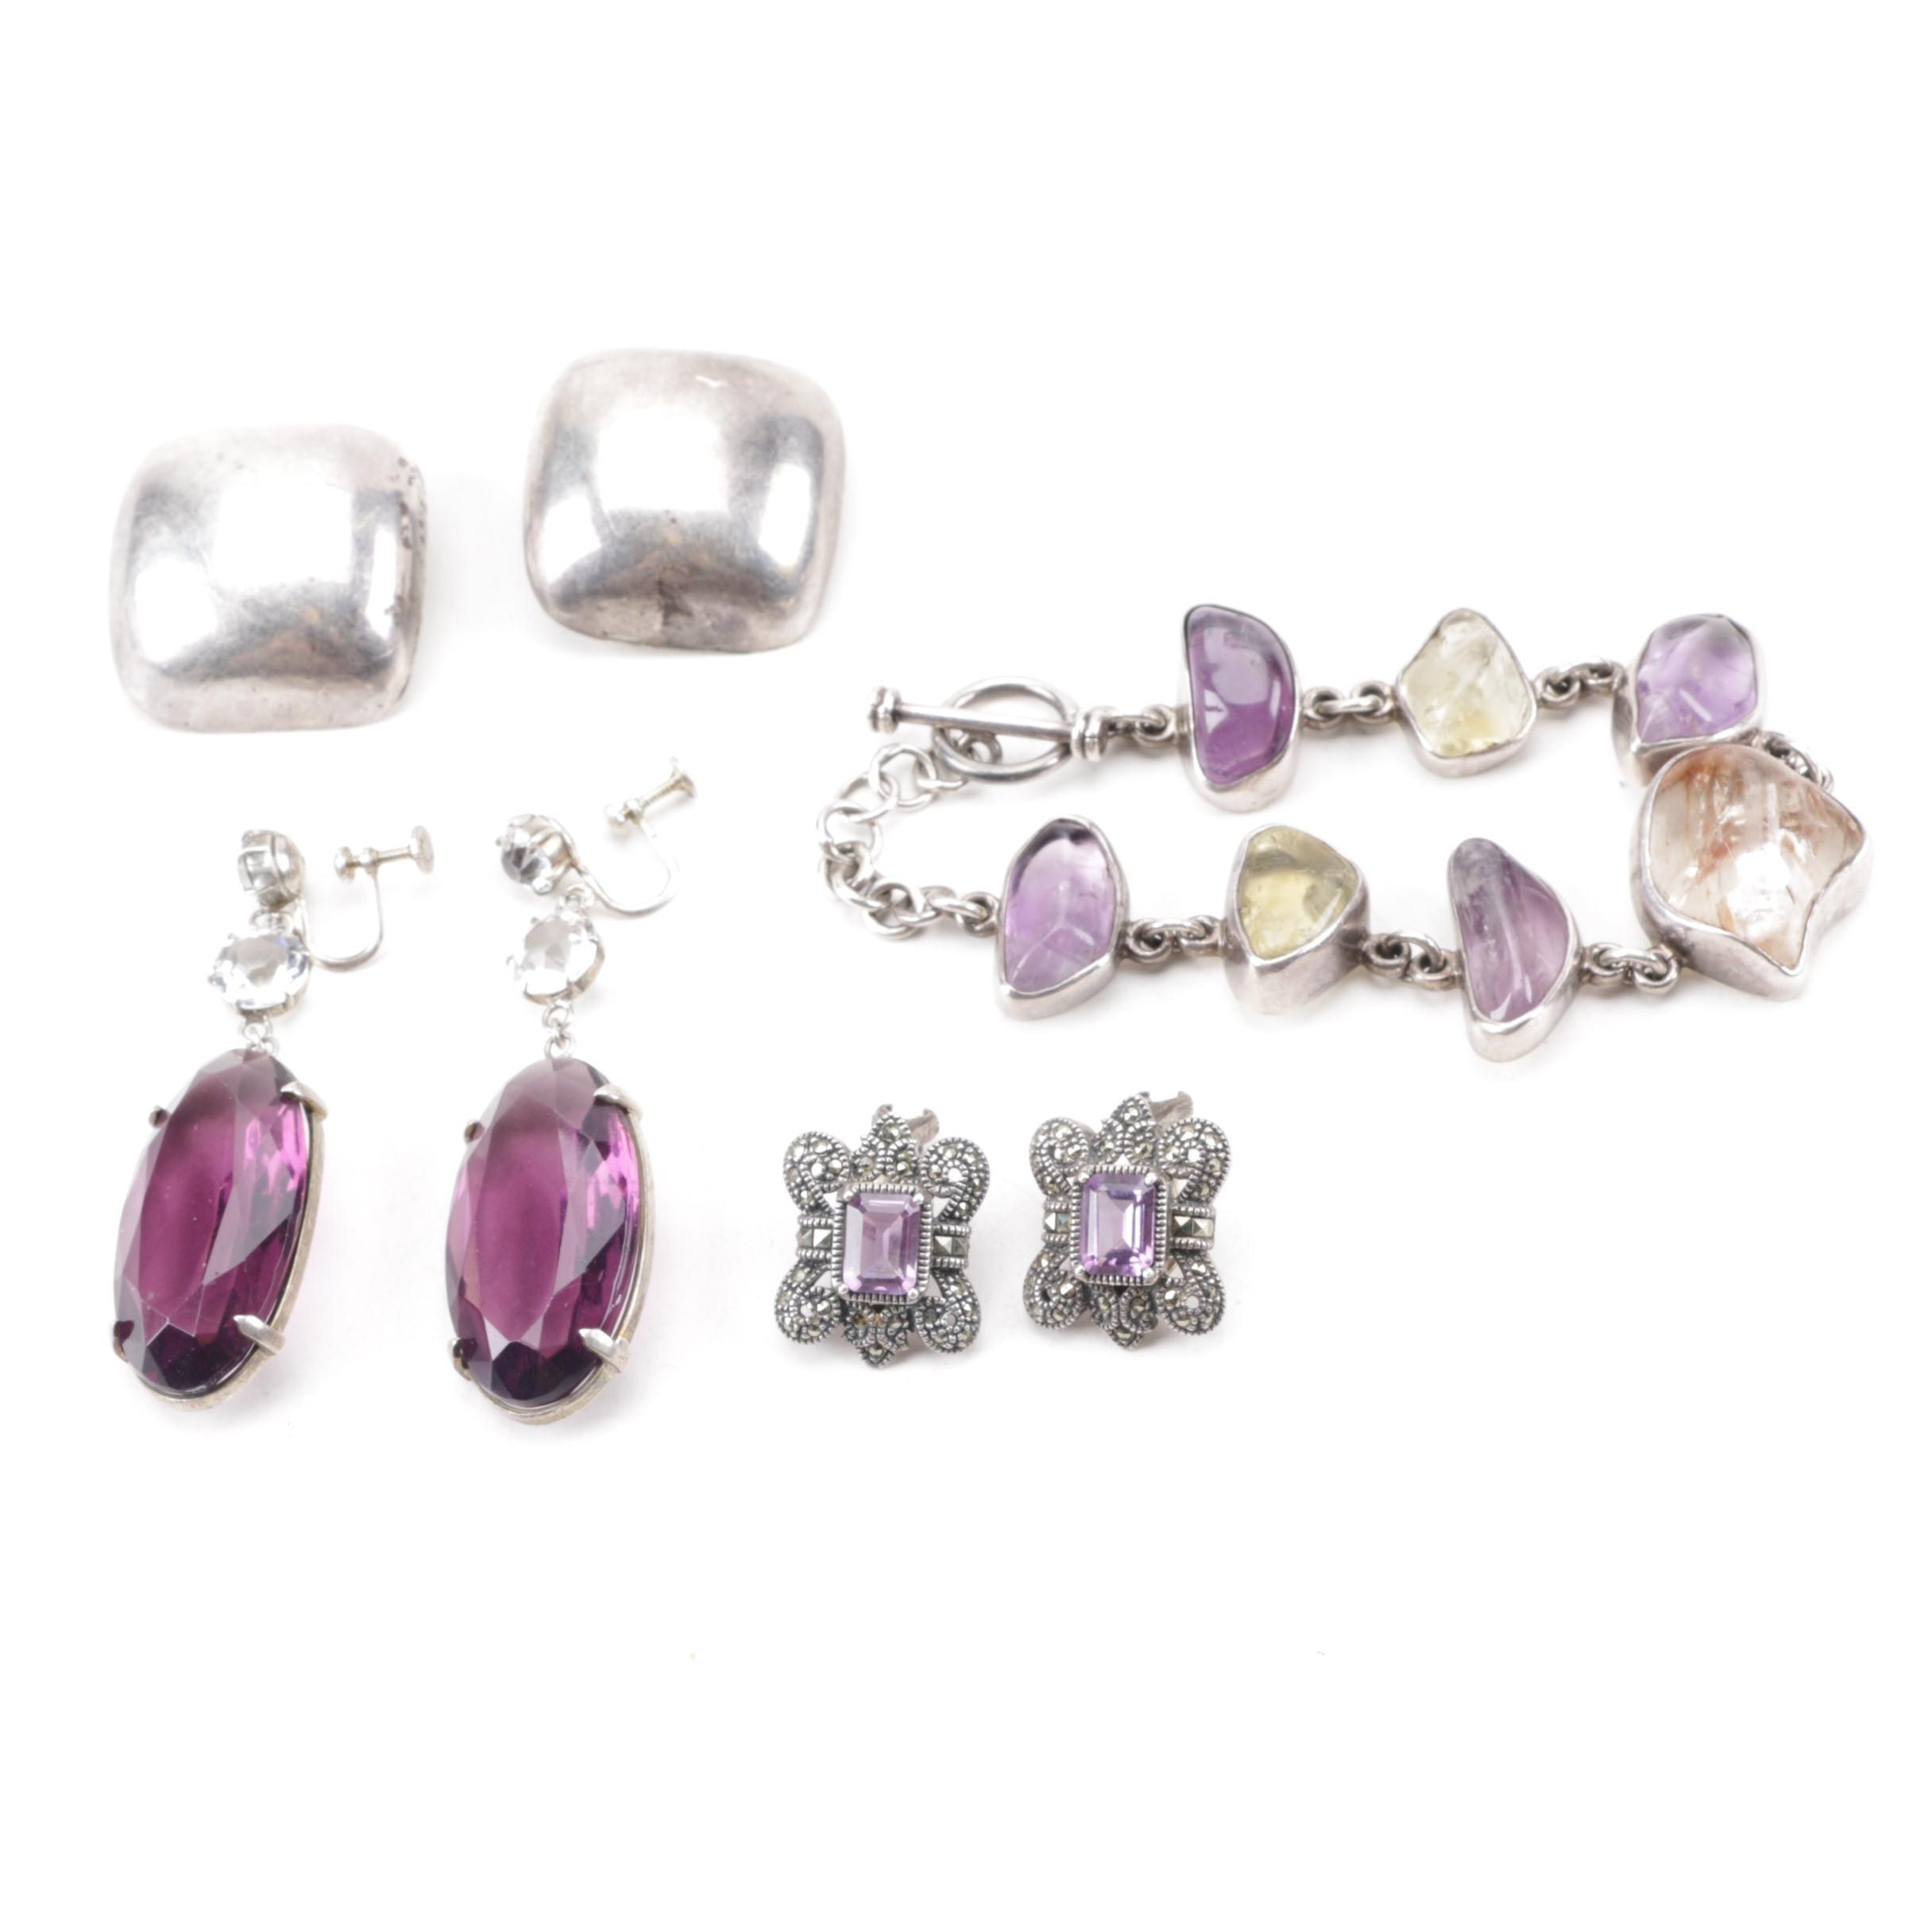 Collection of Sterling Silver Jewelry Including Amethyst and Judith Jack